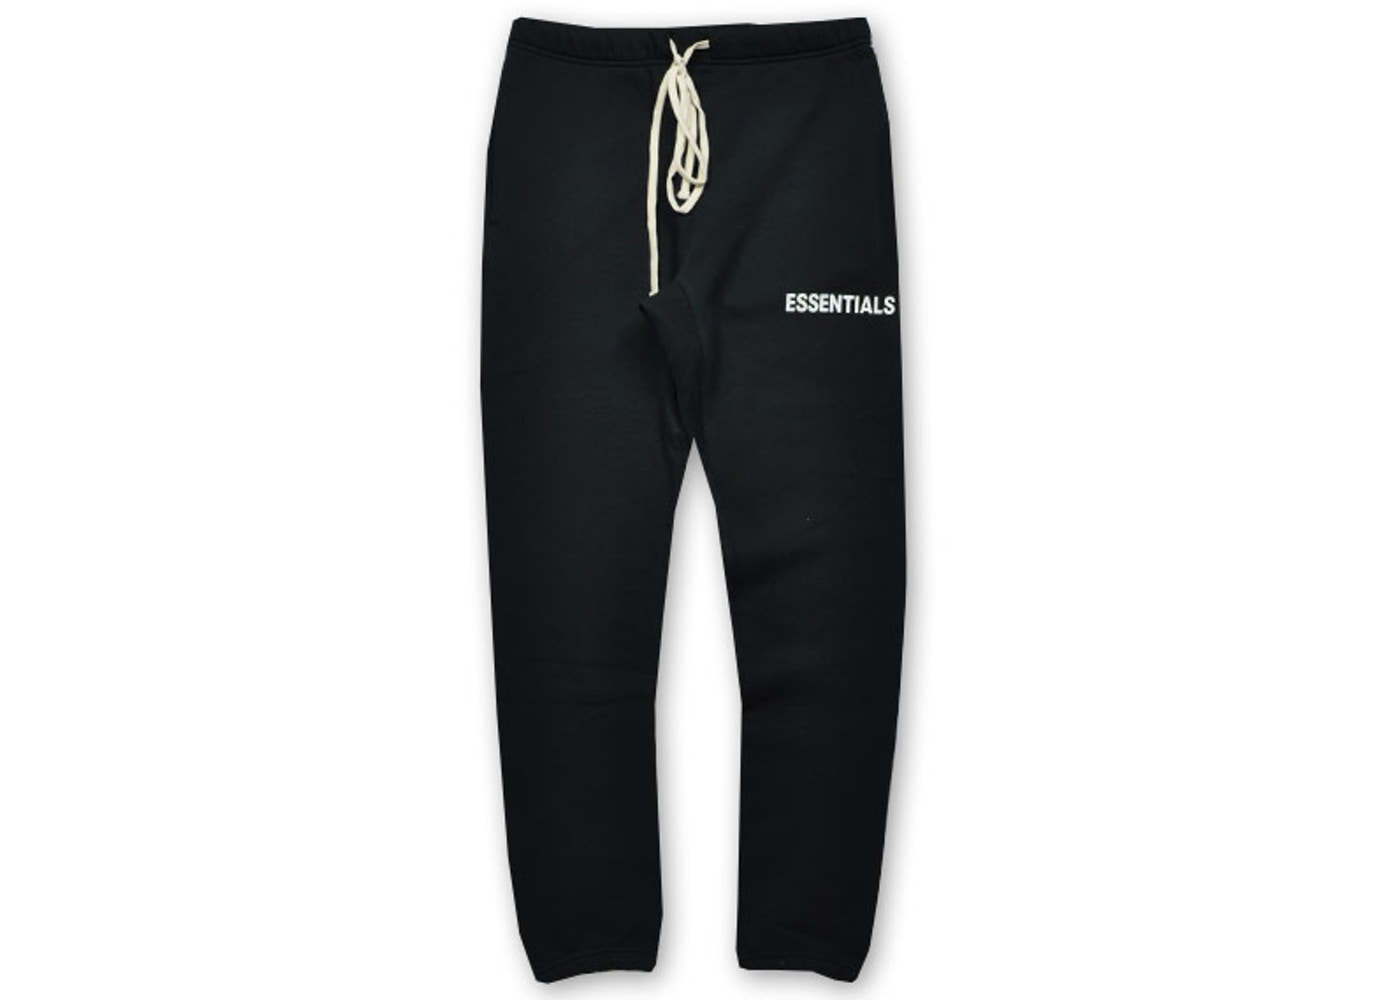 color brilliancy fashionable and attractive package convenience goods FEAR OF GOD Essentials Graphic Sweatpants Black